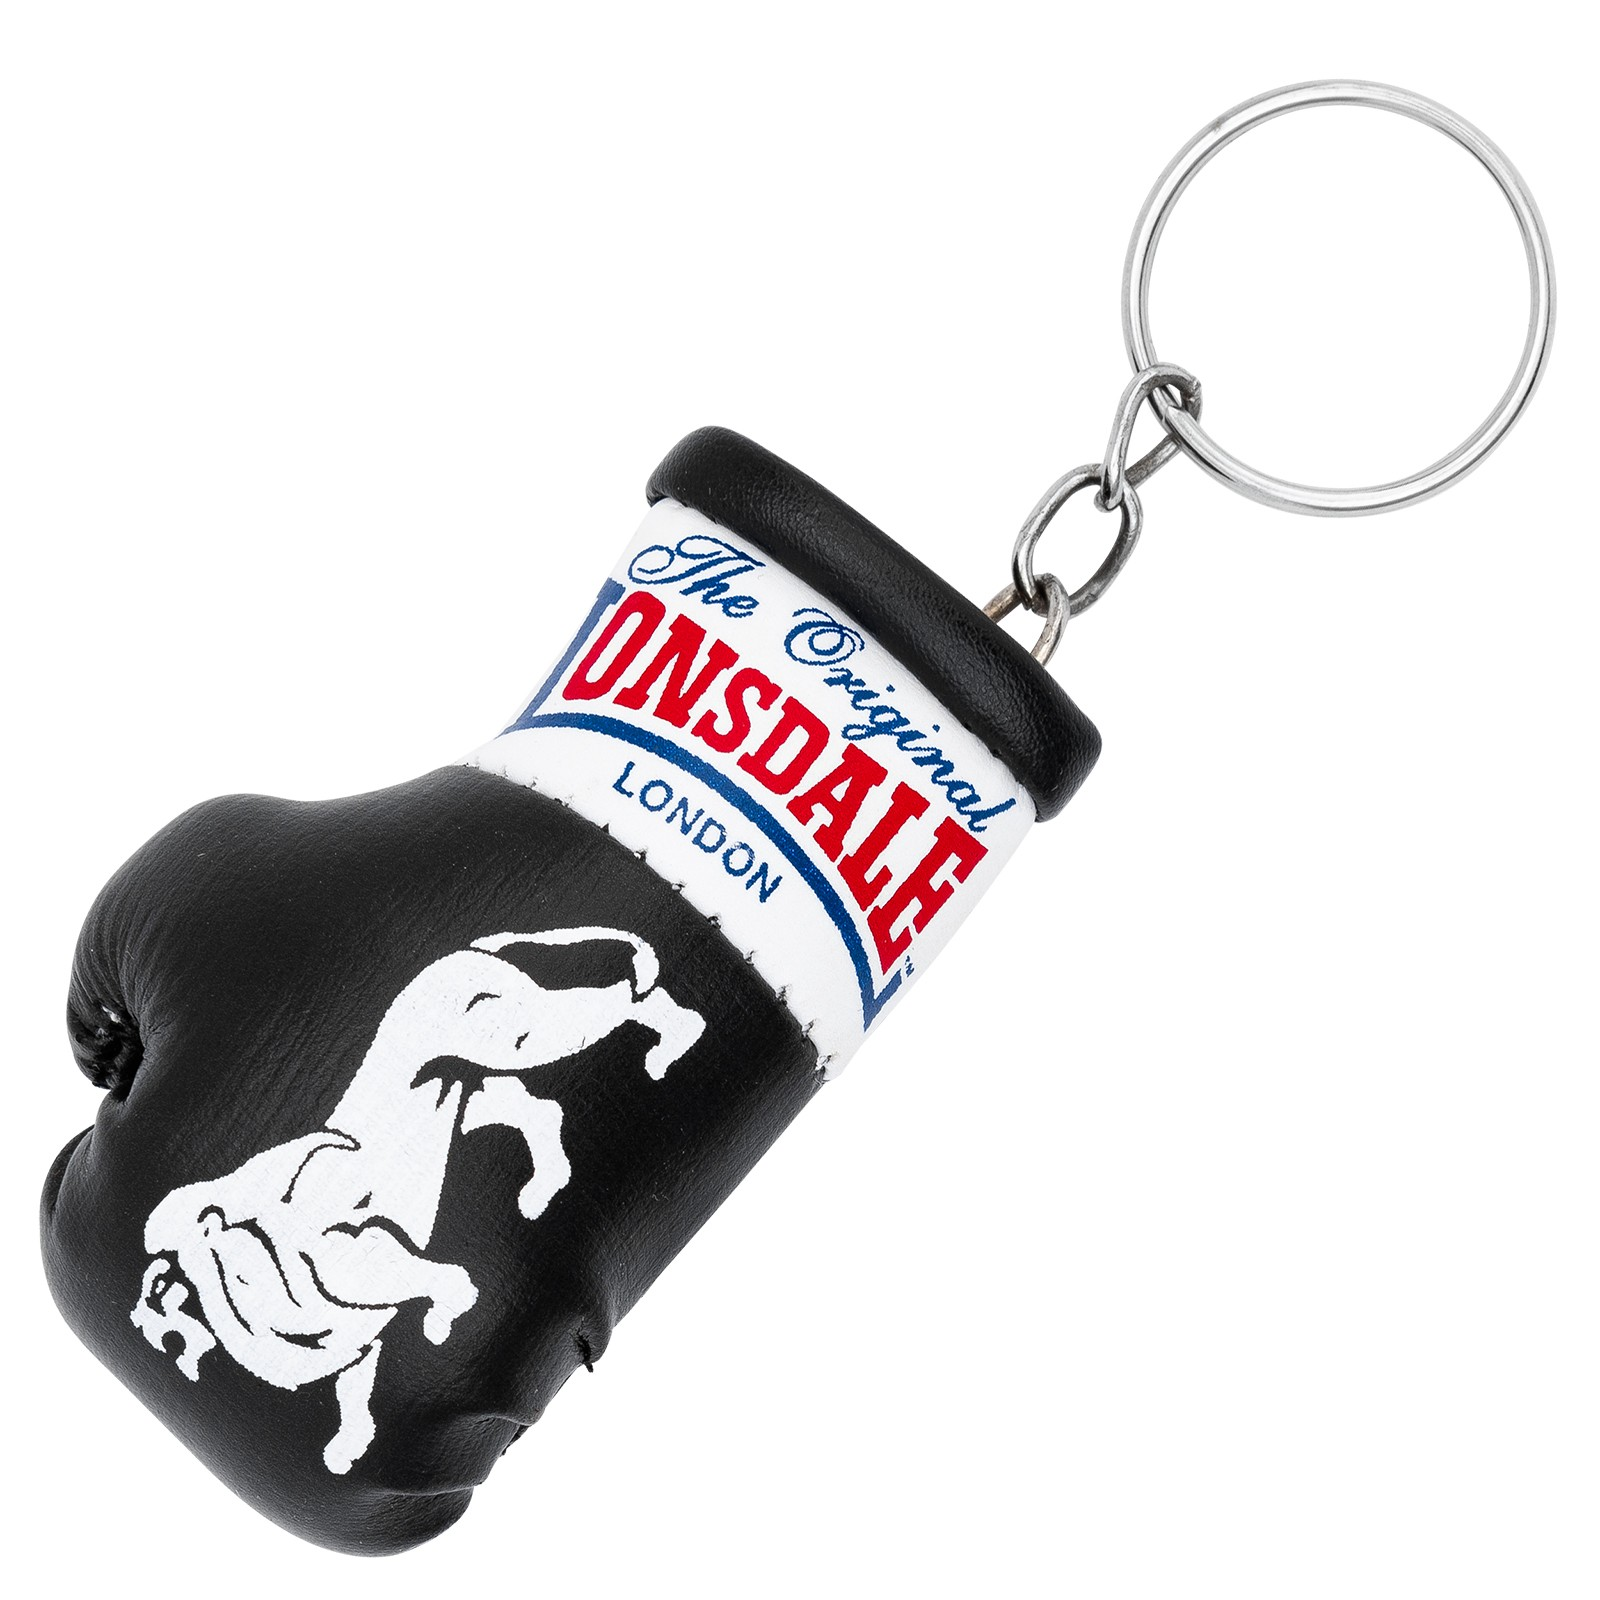 ΜΠΡΕΛΟΚ LONSDALE MINI GLOVES KEYRING